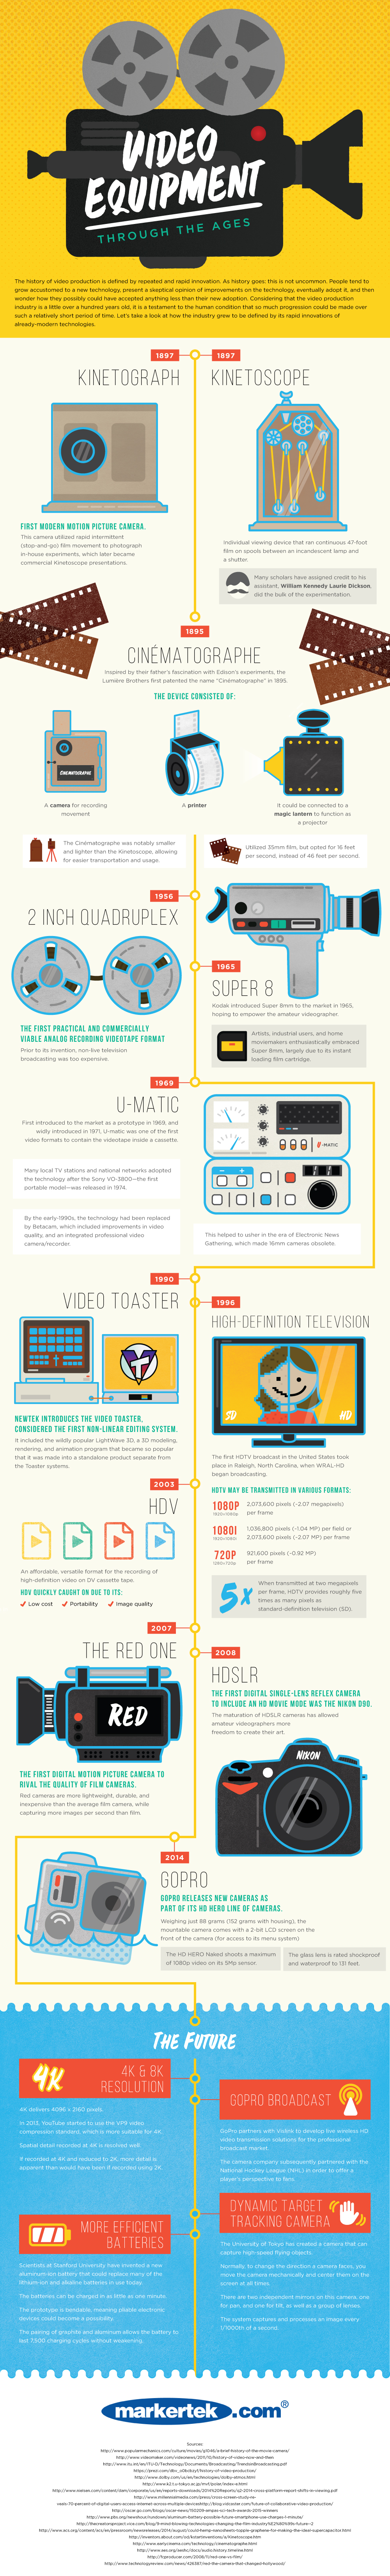 Video Equipment Through the Ages Infographic